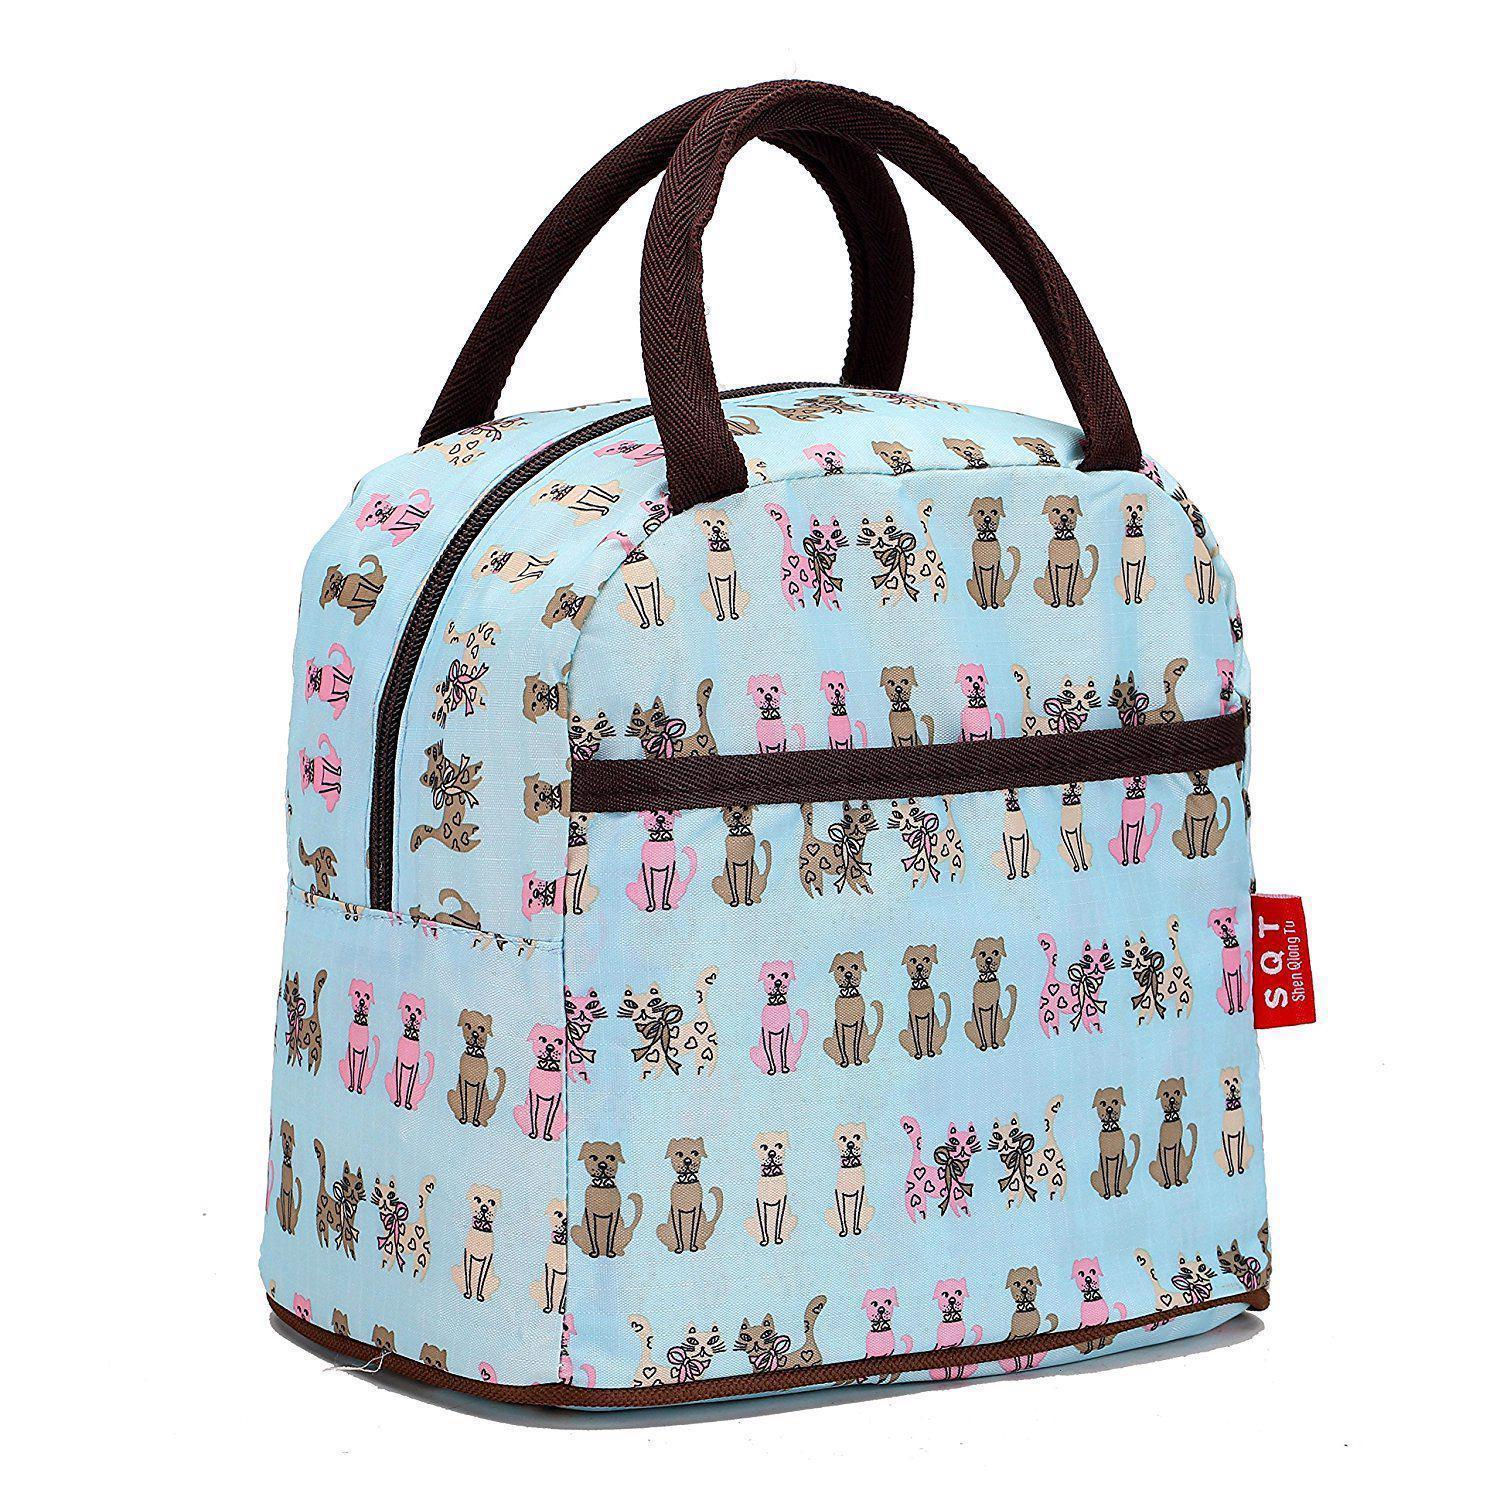 Fashion Zipper Lunch Bag Picnic Box For Women Tote Handbag Pattern Puppy Bag